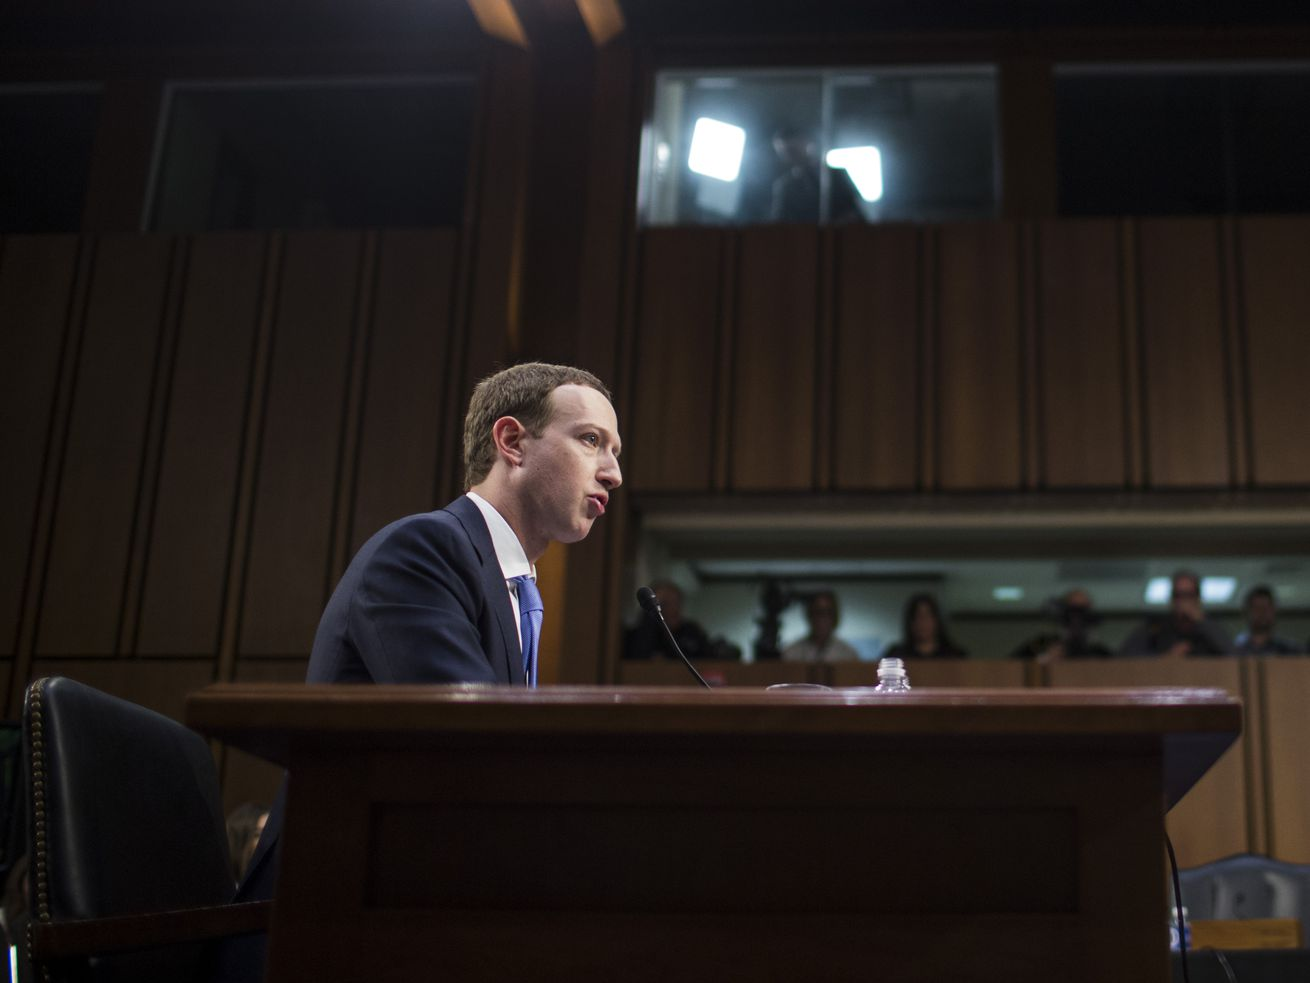 Facebook CEO Mark Zuckerberg testified to the Senate on Capitol Hill on April 10, 2018.